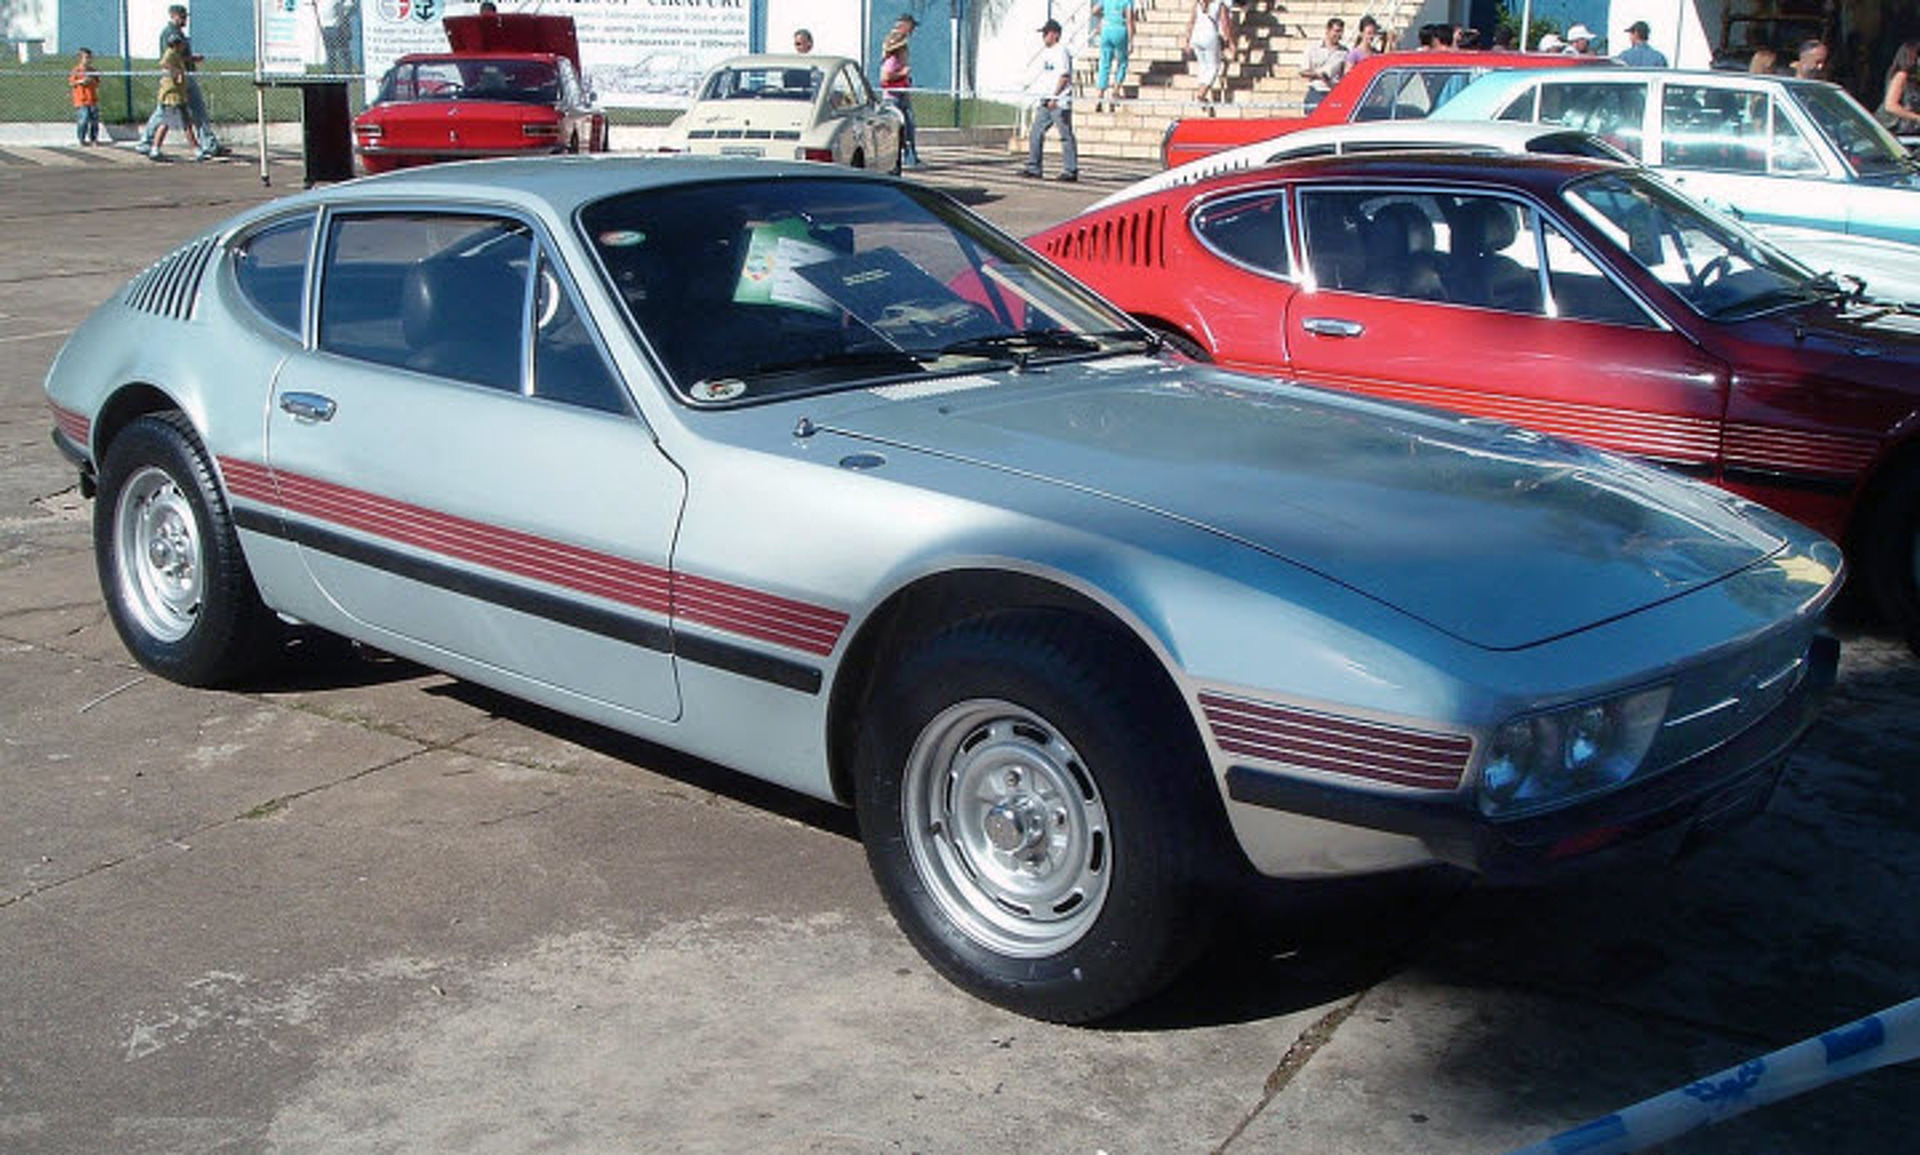 World Cup 2014: Brazil\'s 5 Coolest Classic Cars